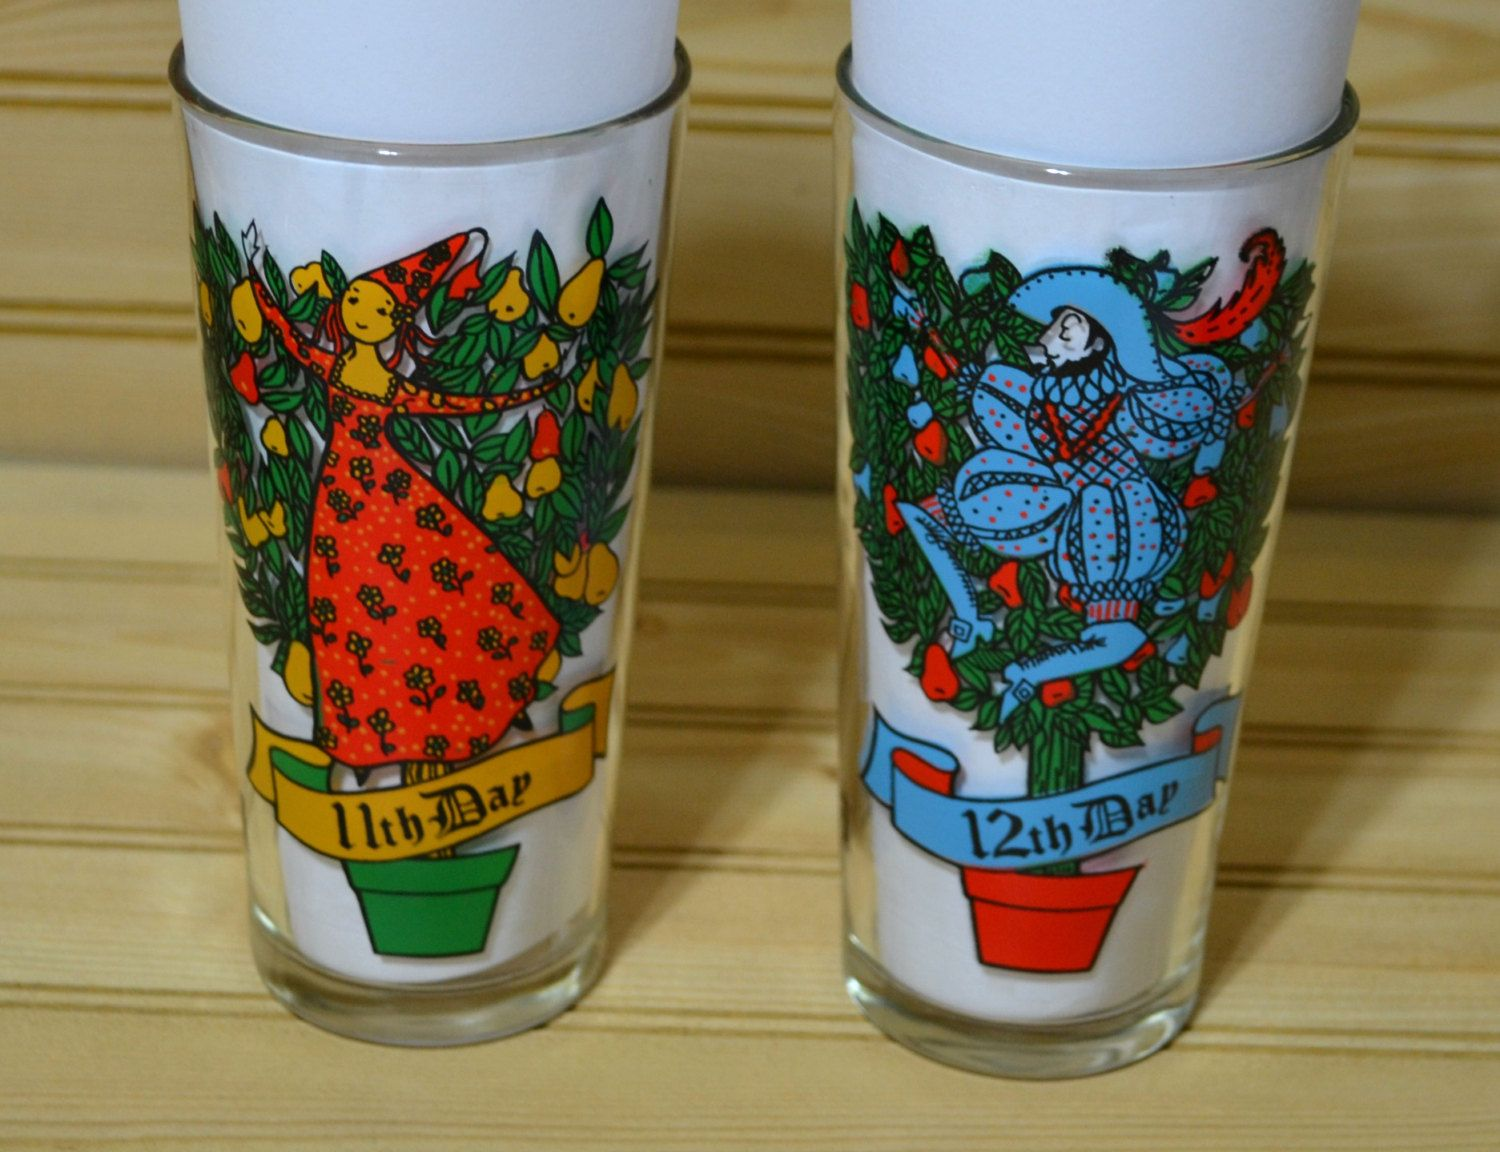 vintage pepsi holiday 12 days of christmas glasses collectible advertisement ladies dancing lords a leapingtaper glass advertising by grannysbackporchvint